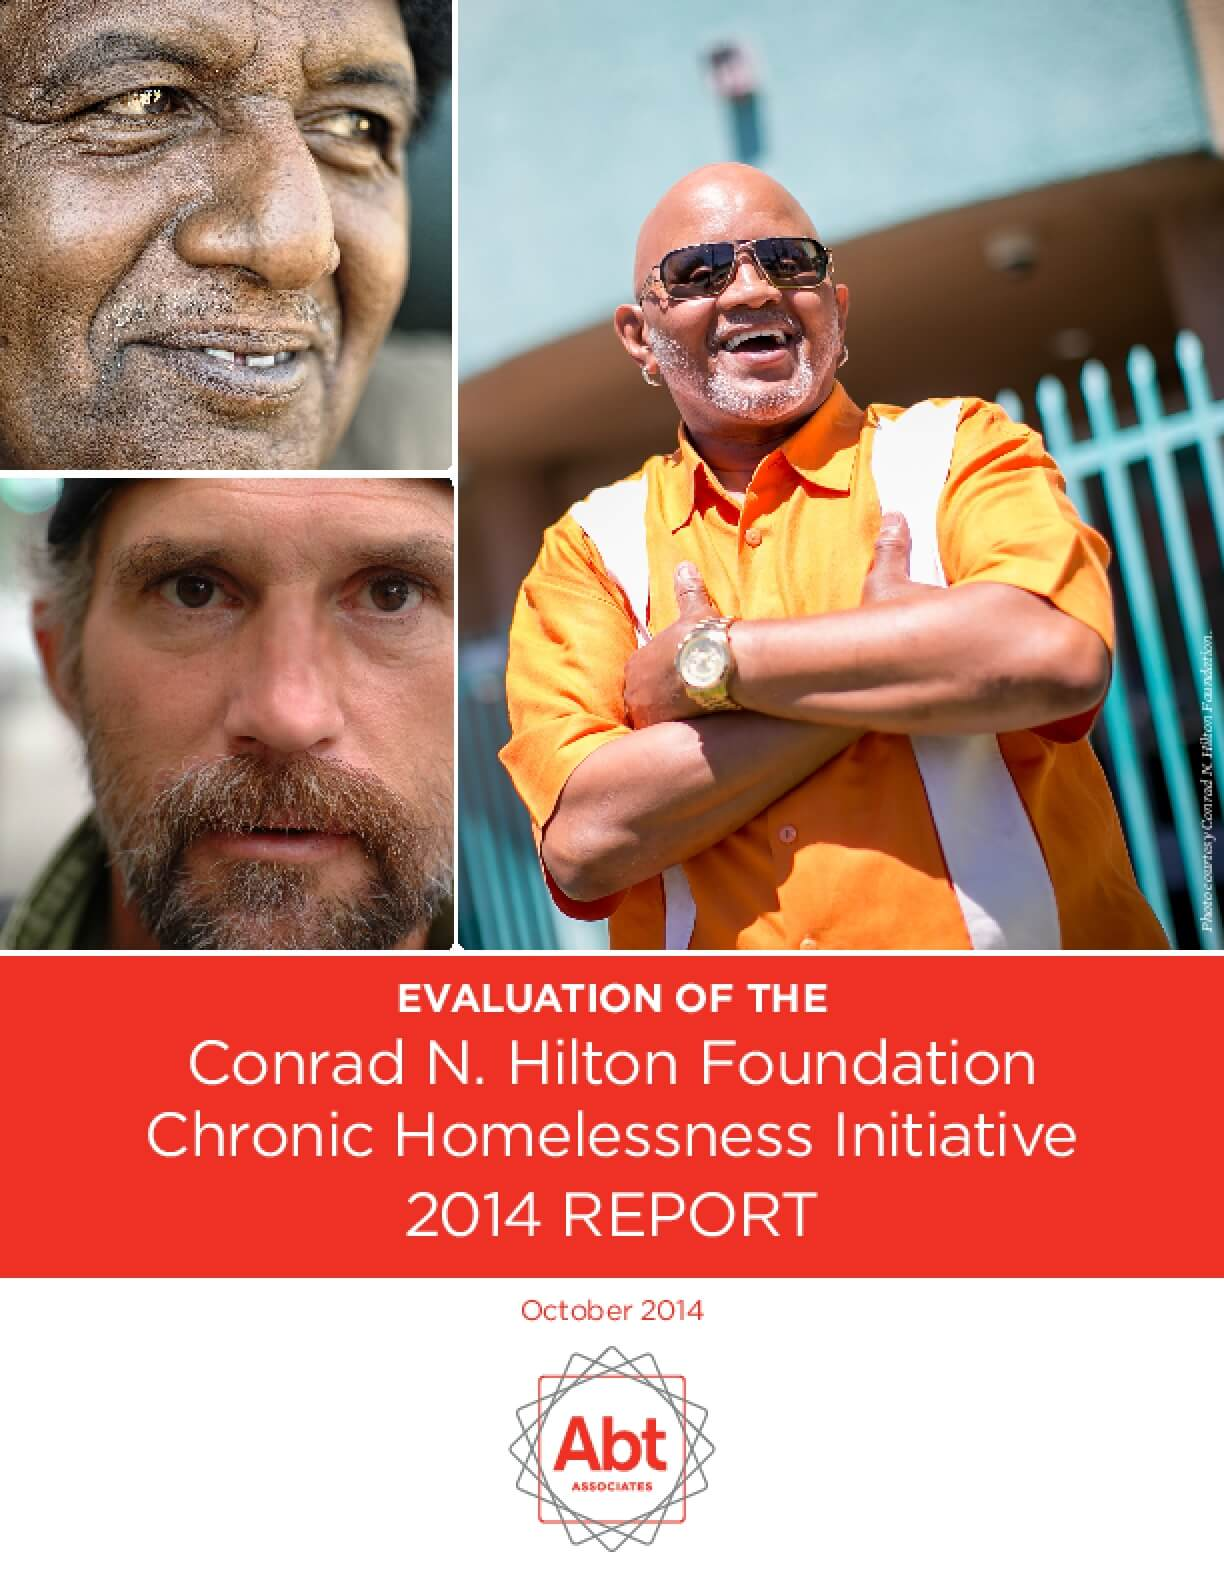 Evaluation of the Conrad N. Hilton Foundation Chronic Homelessness Initiative: 2014